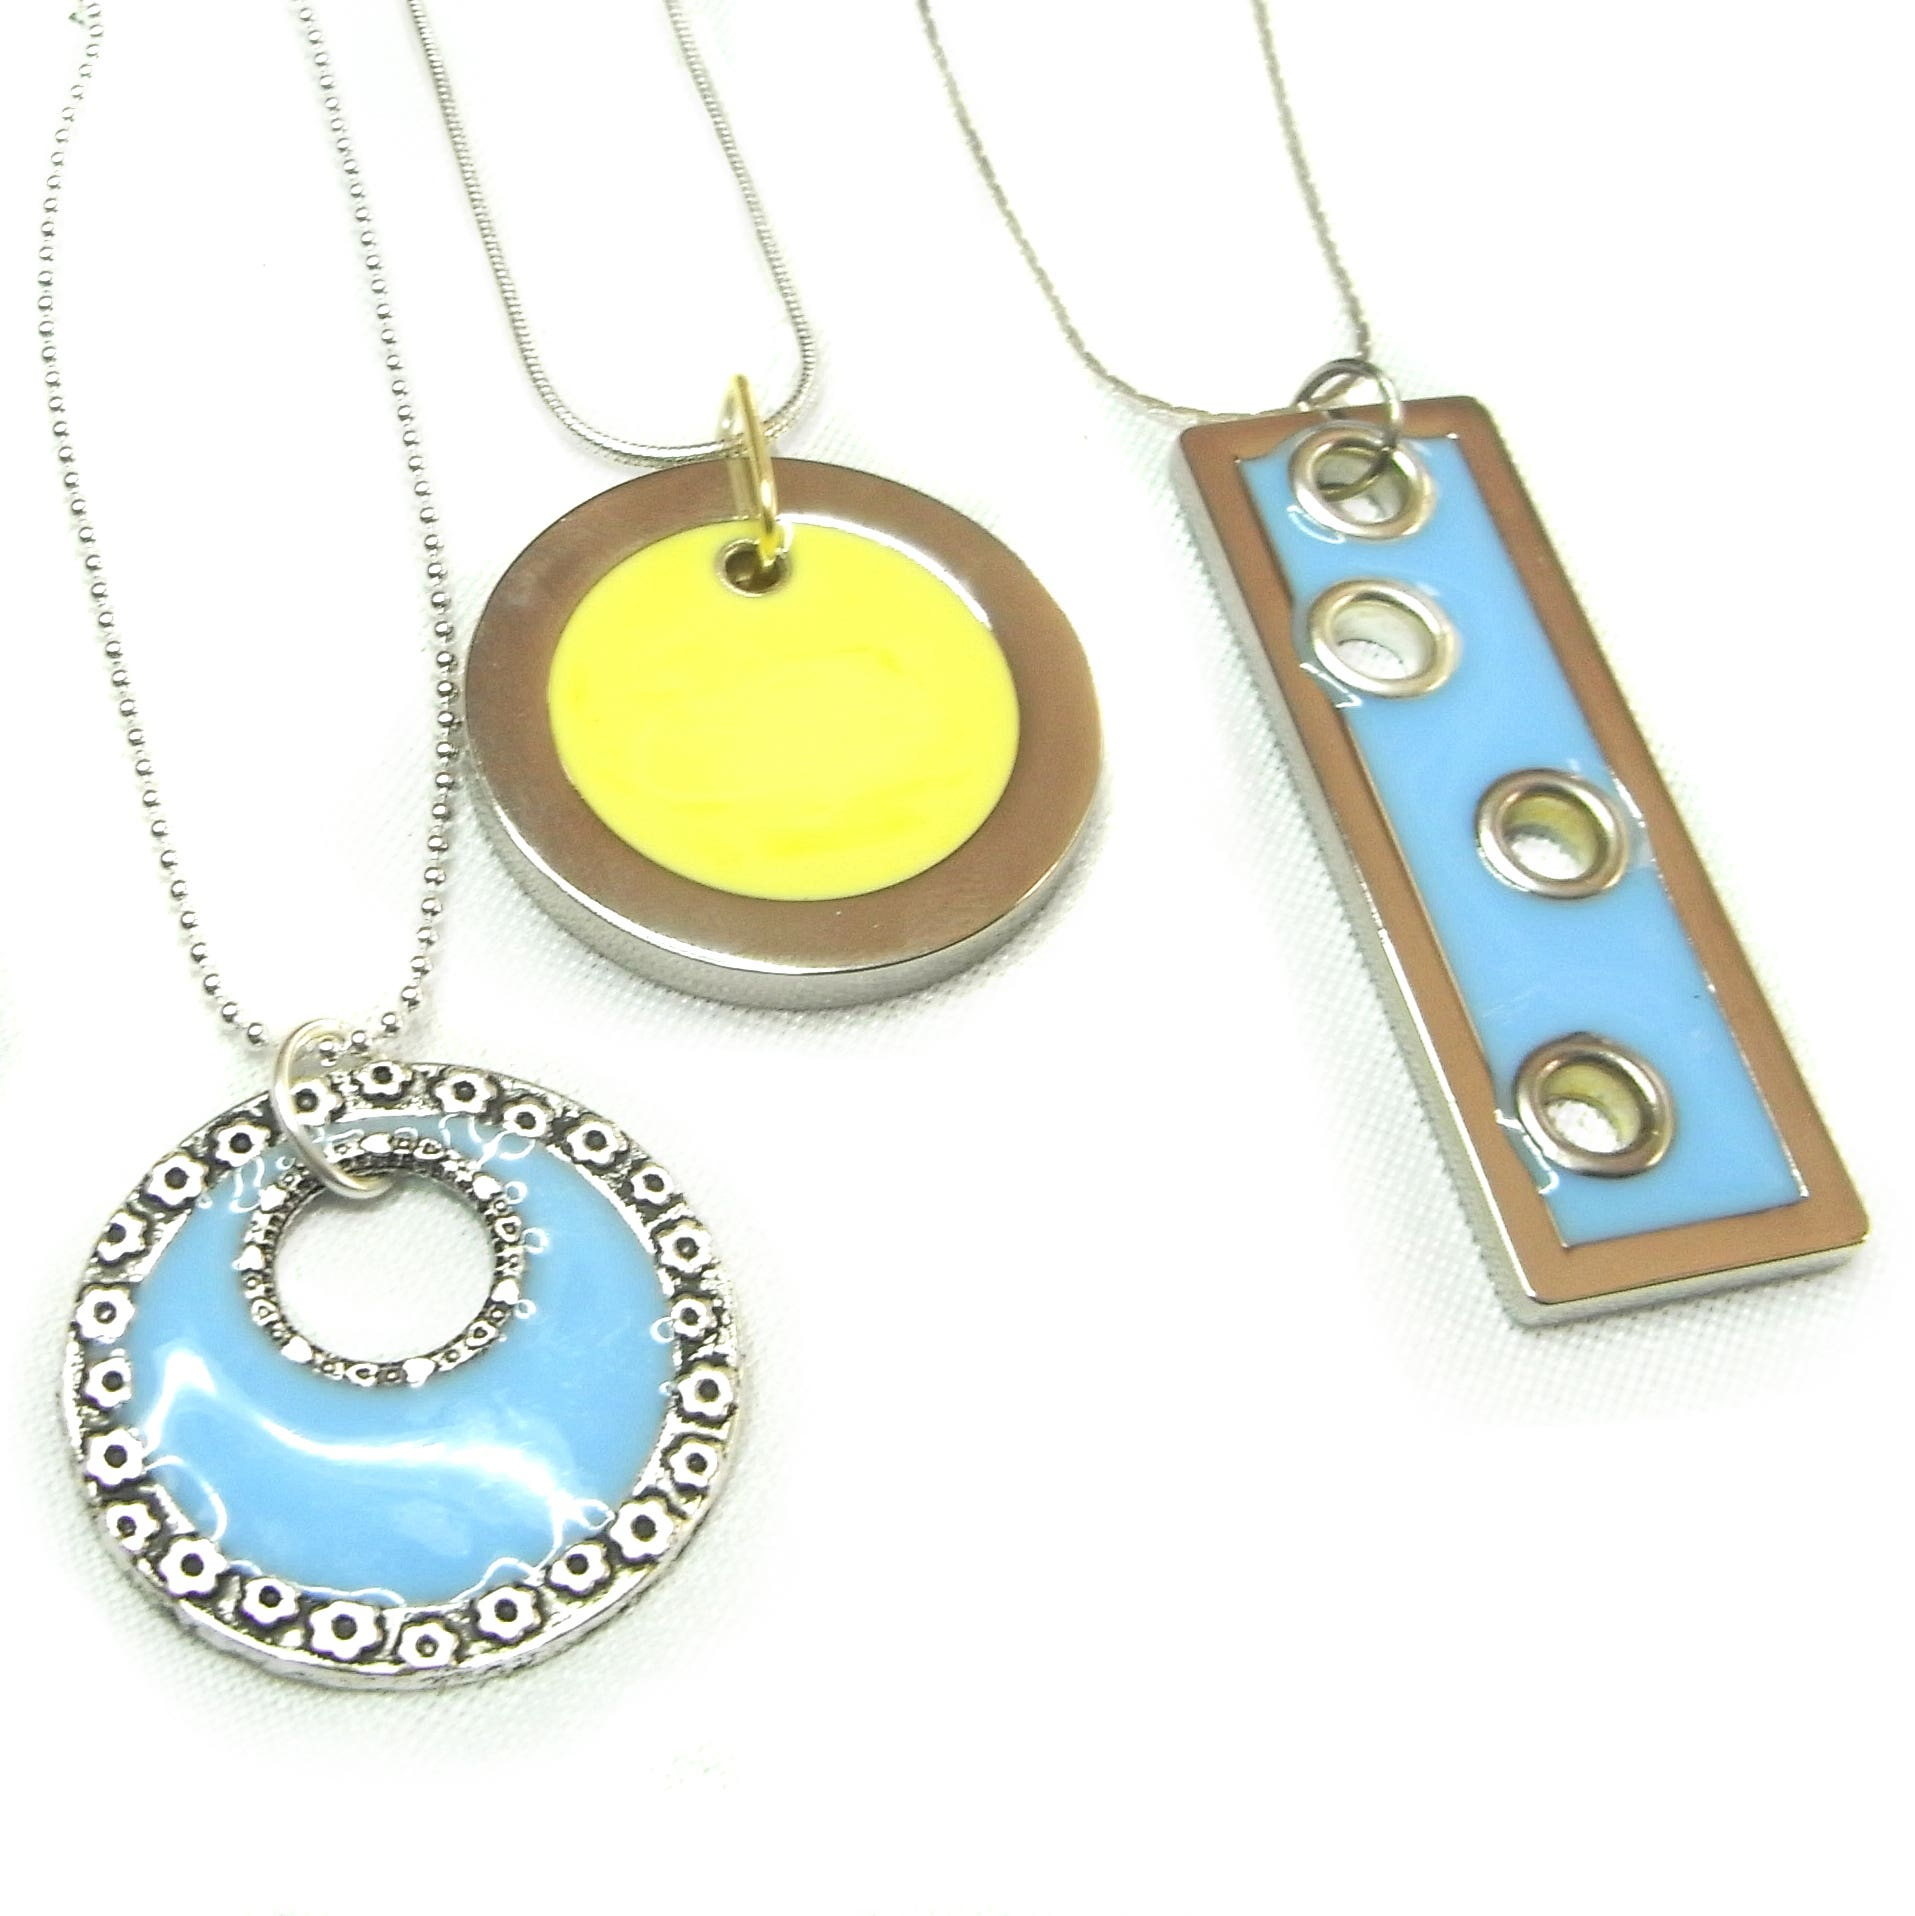 Round and rectangular metal pendants filled with pastel blue and yellow resin